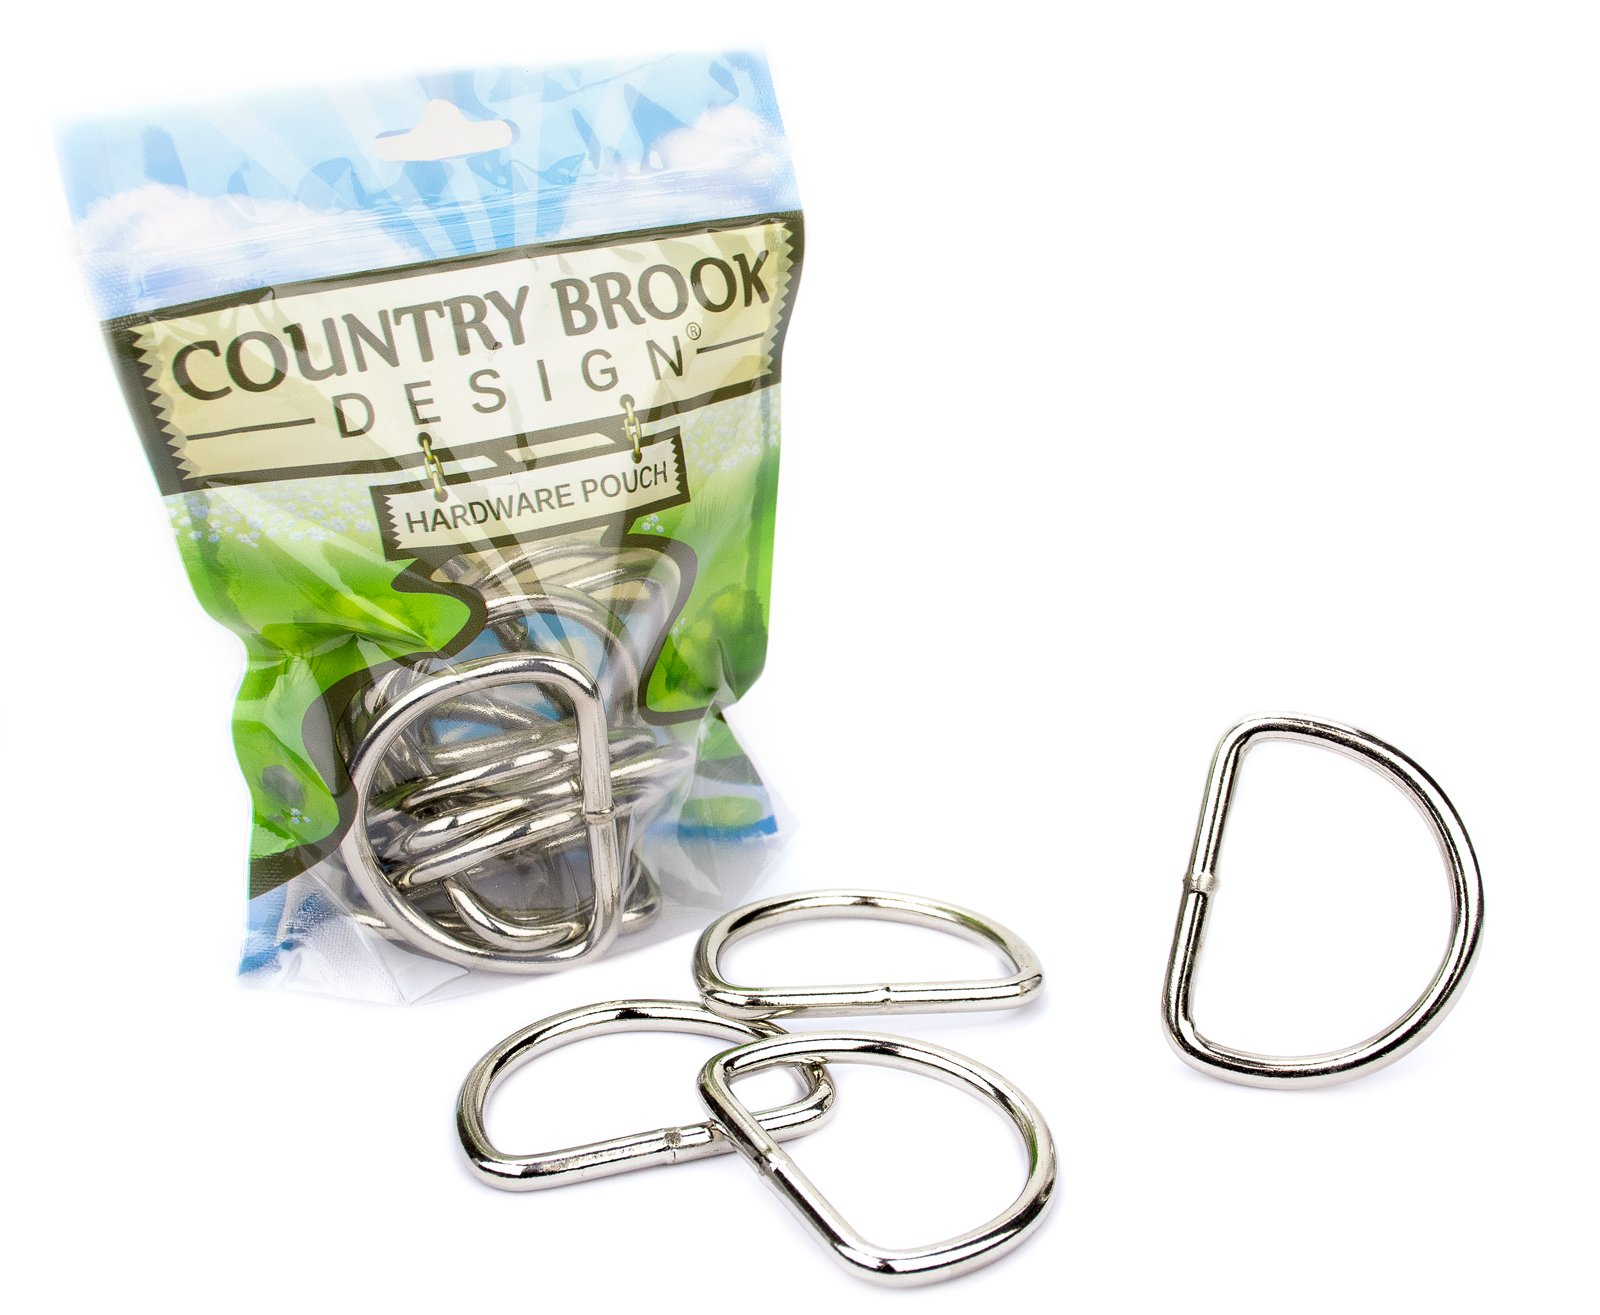 50 - Country Brook Design - 2 Inch Heavy Welded D-Rings by Country Brook Design